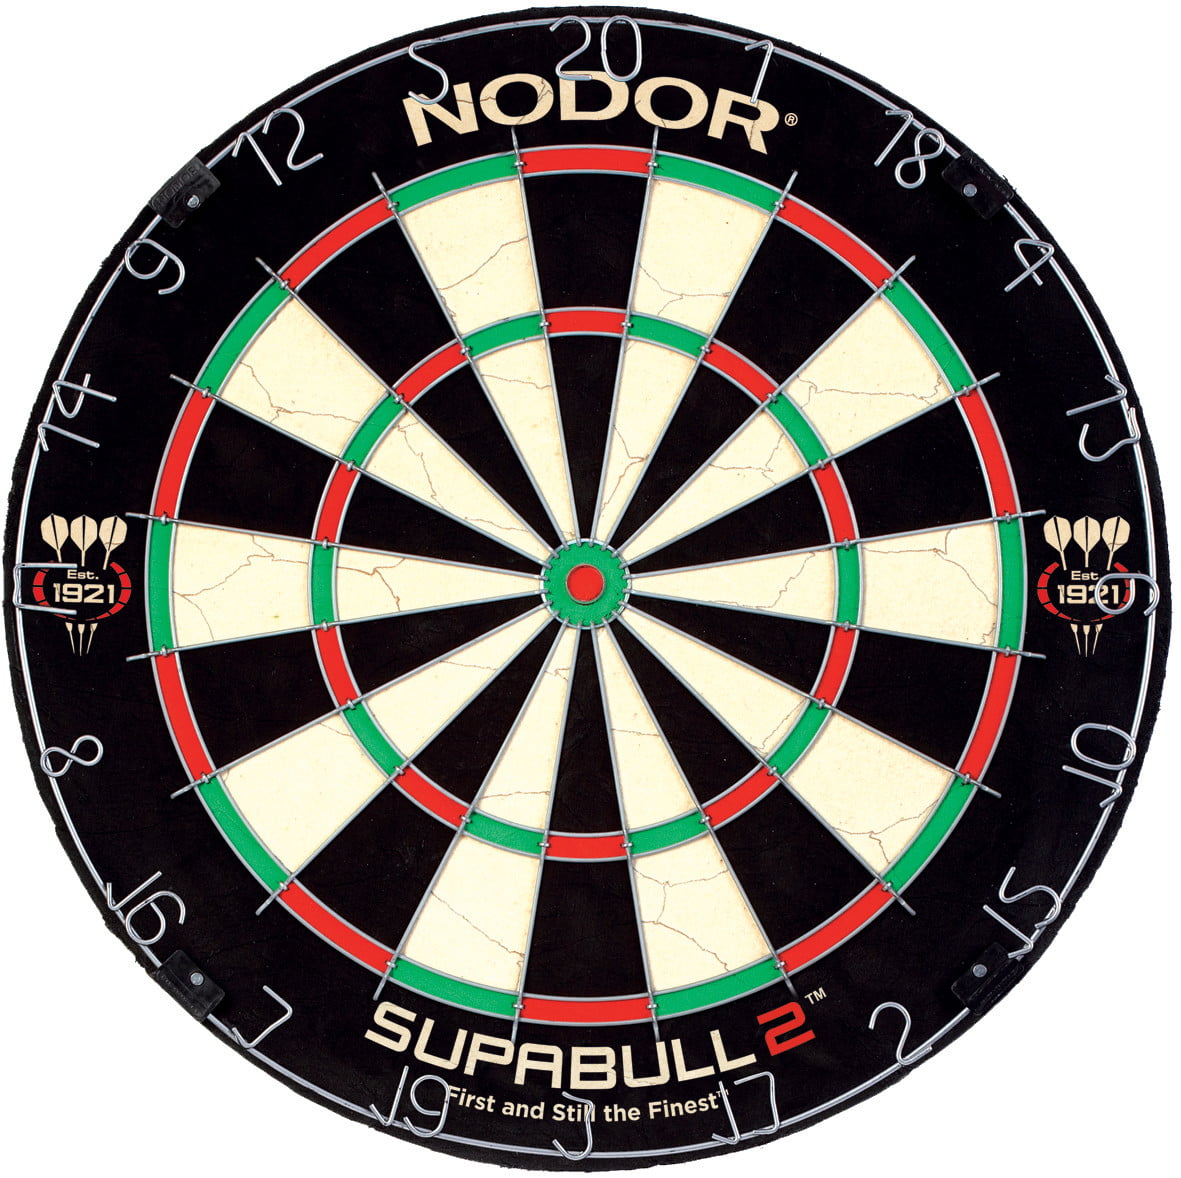 Details about  /Nodor SupaBull2 Bristle Dartboard Equipped with Easy-Turn Steel Numbers for B...